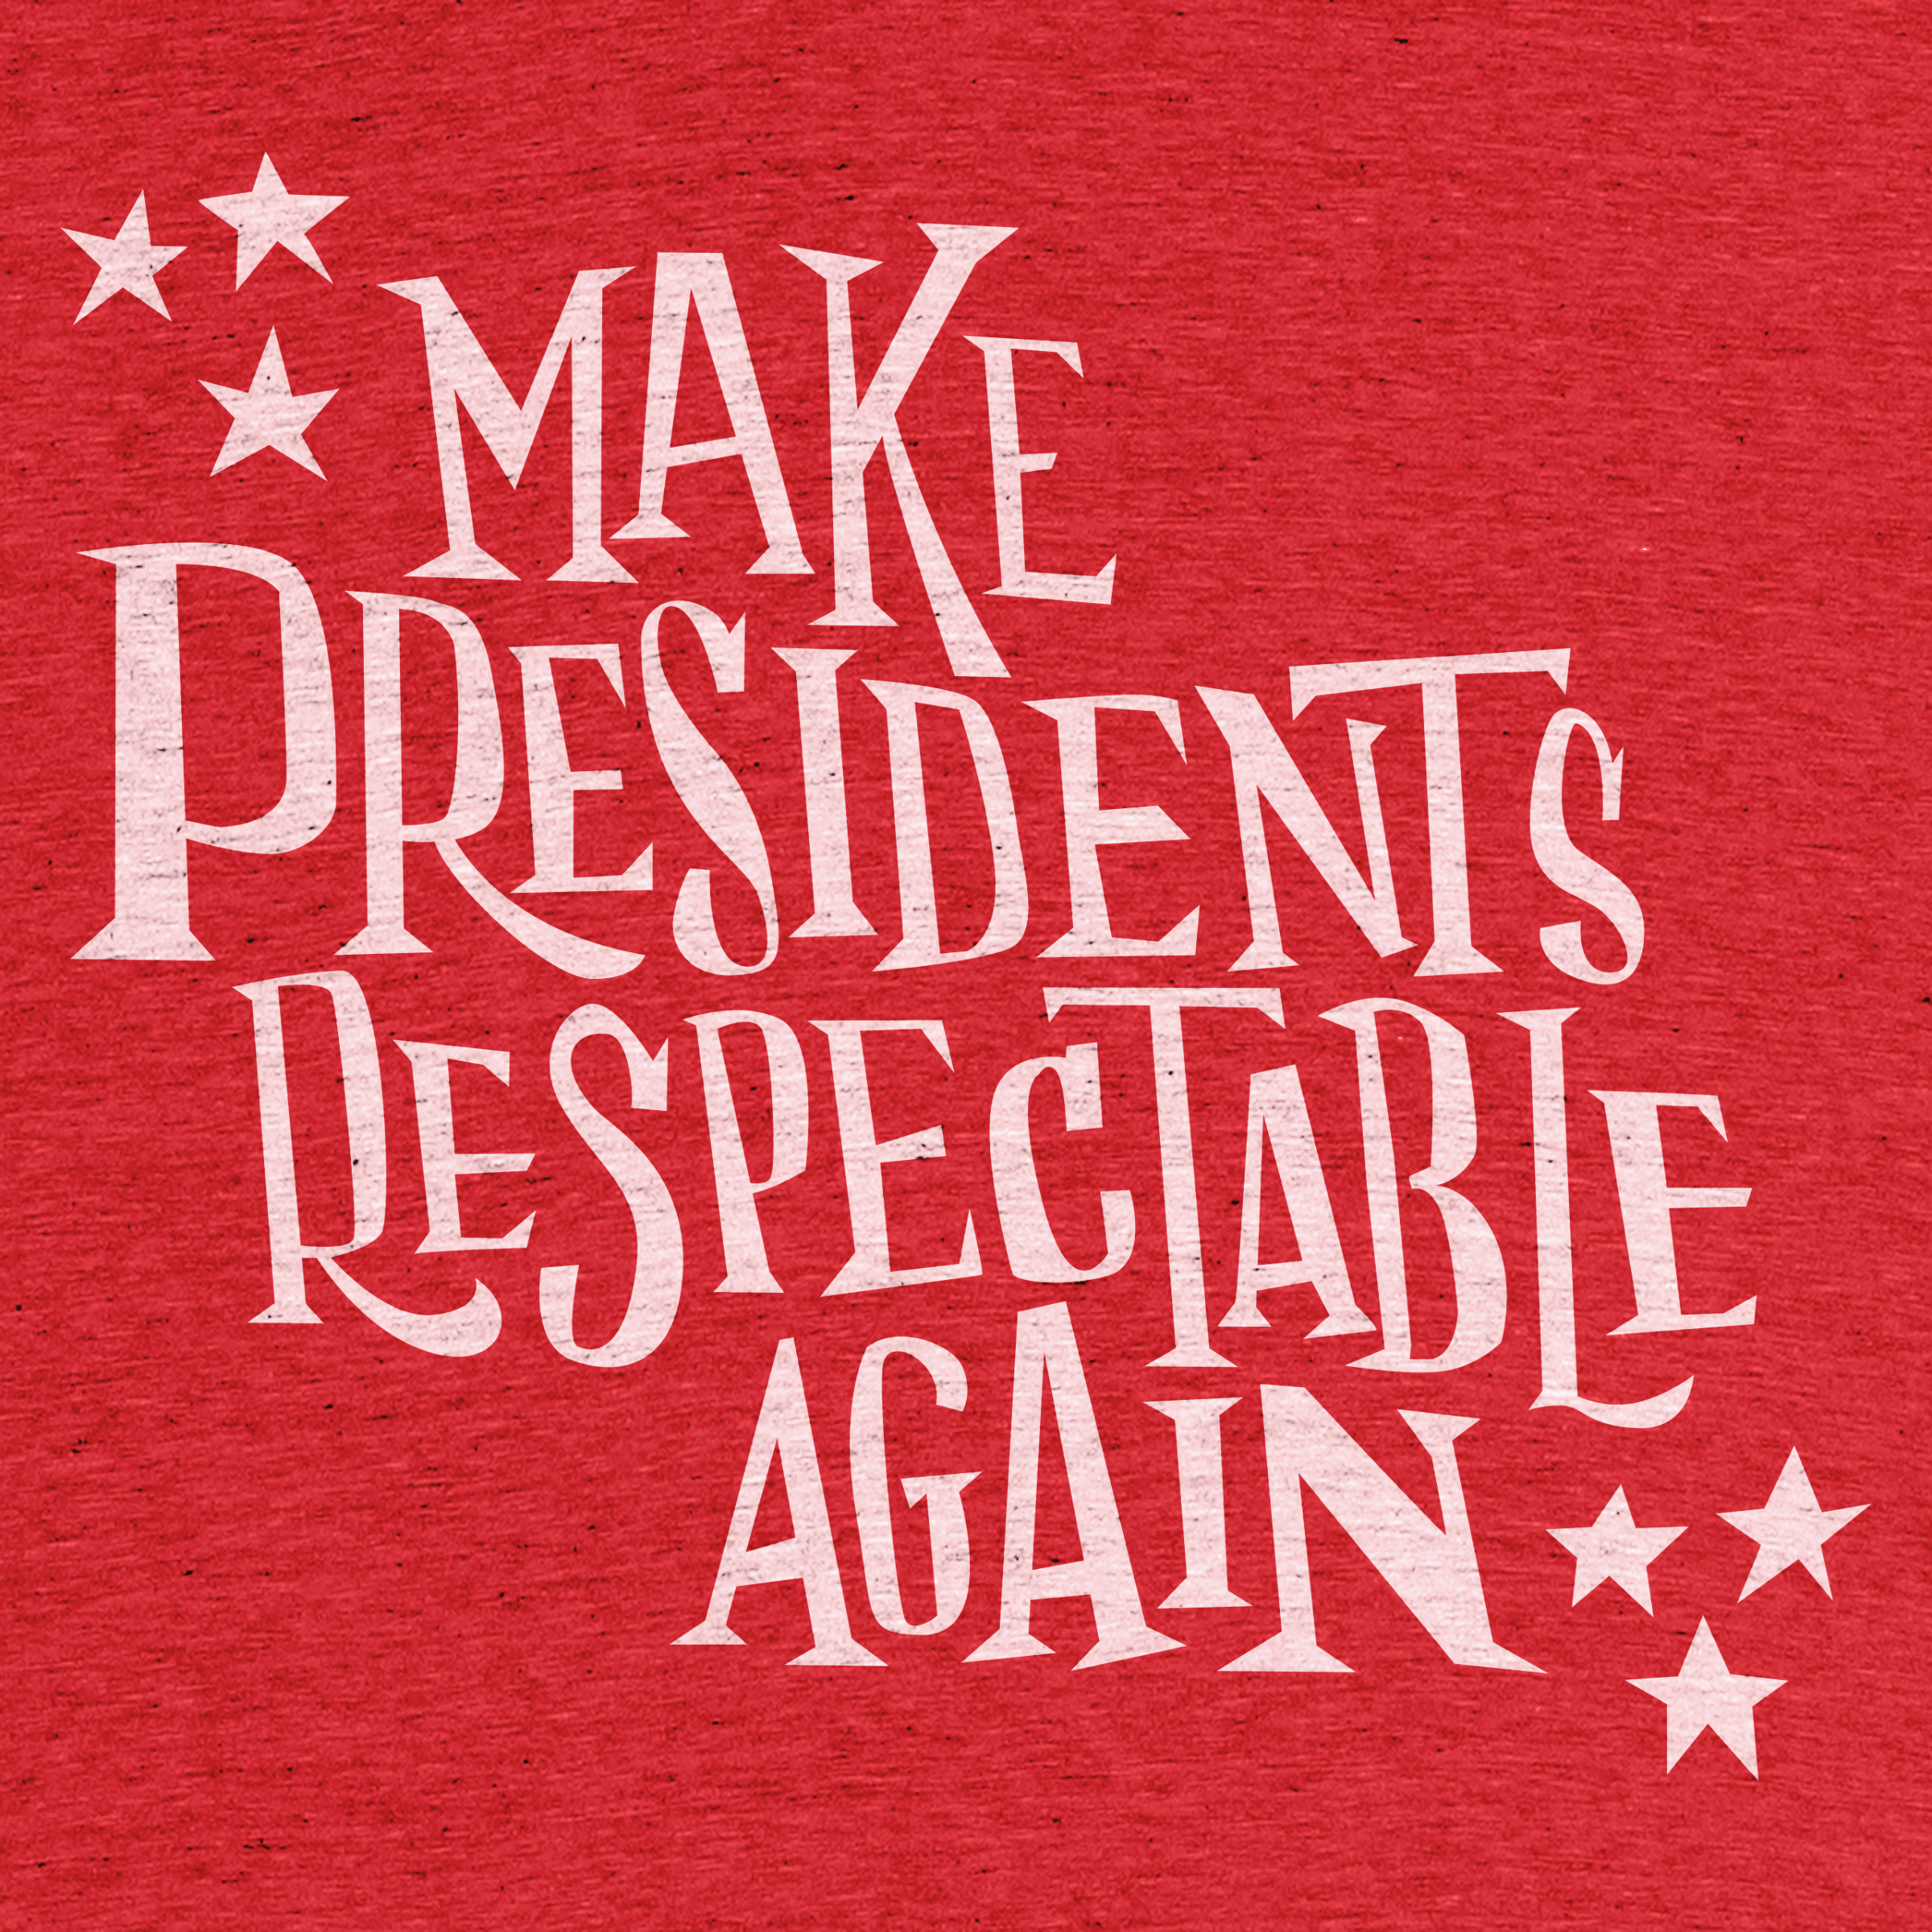 Make Presidents Respectable Again